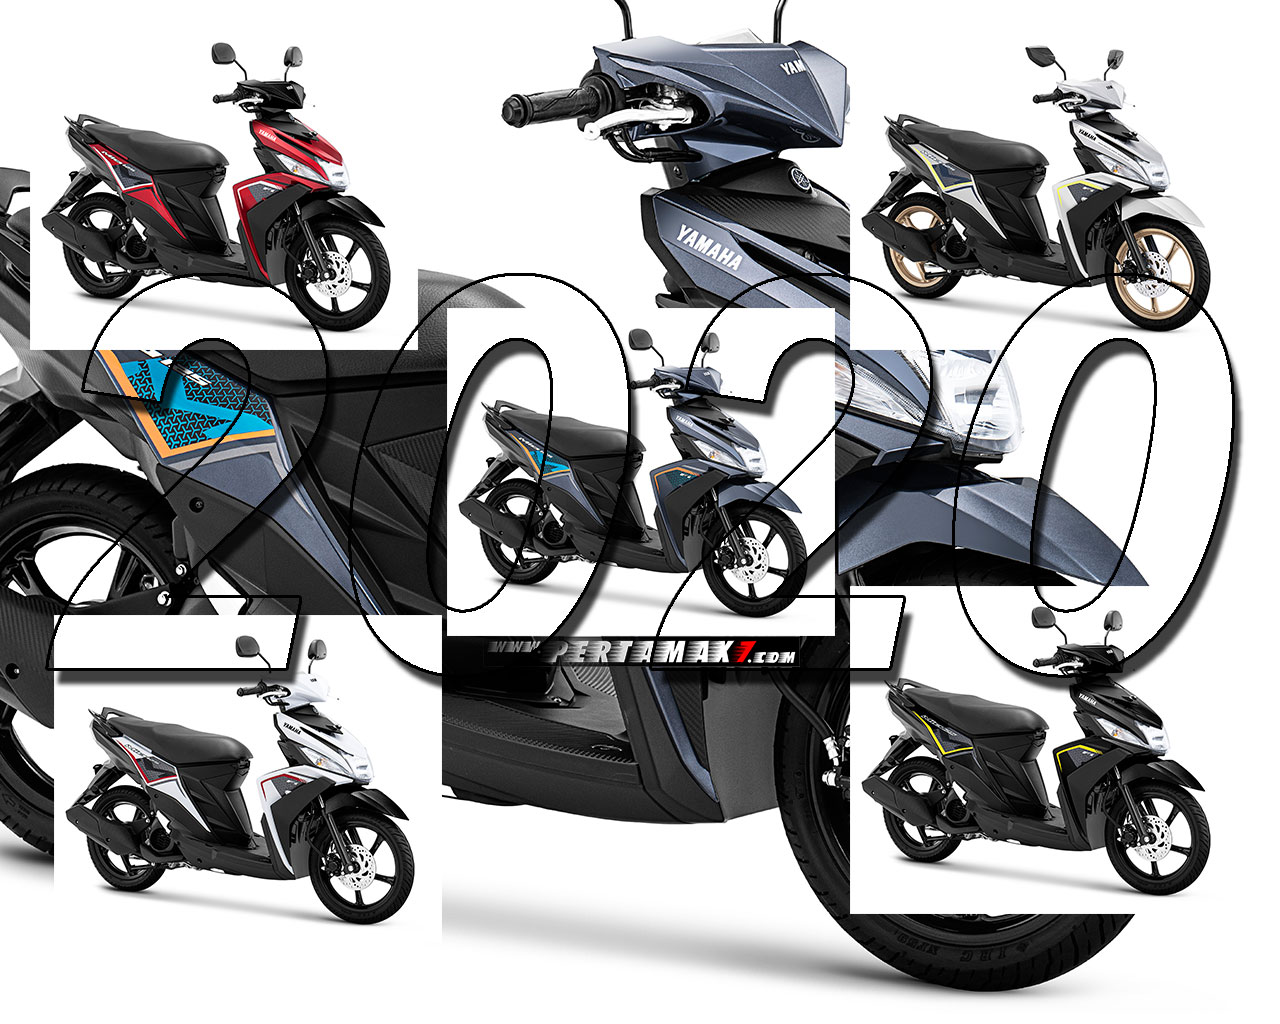 Press Release Warna Baru Yamaha MIO M3 Versi 2020